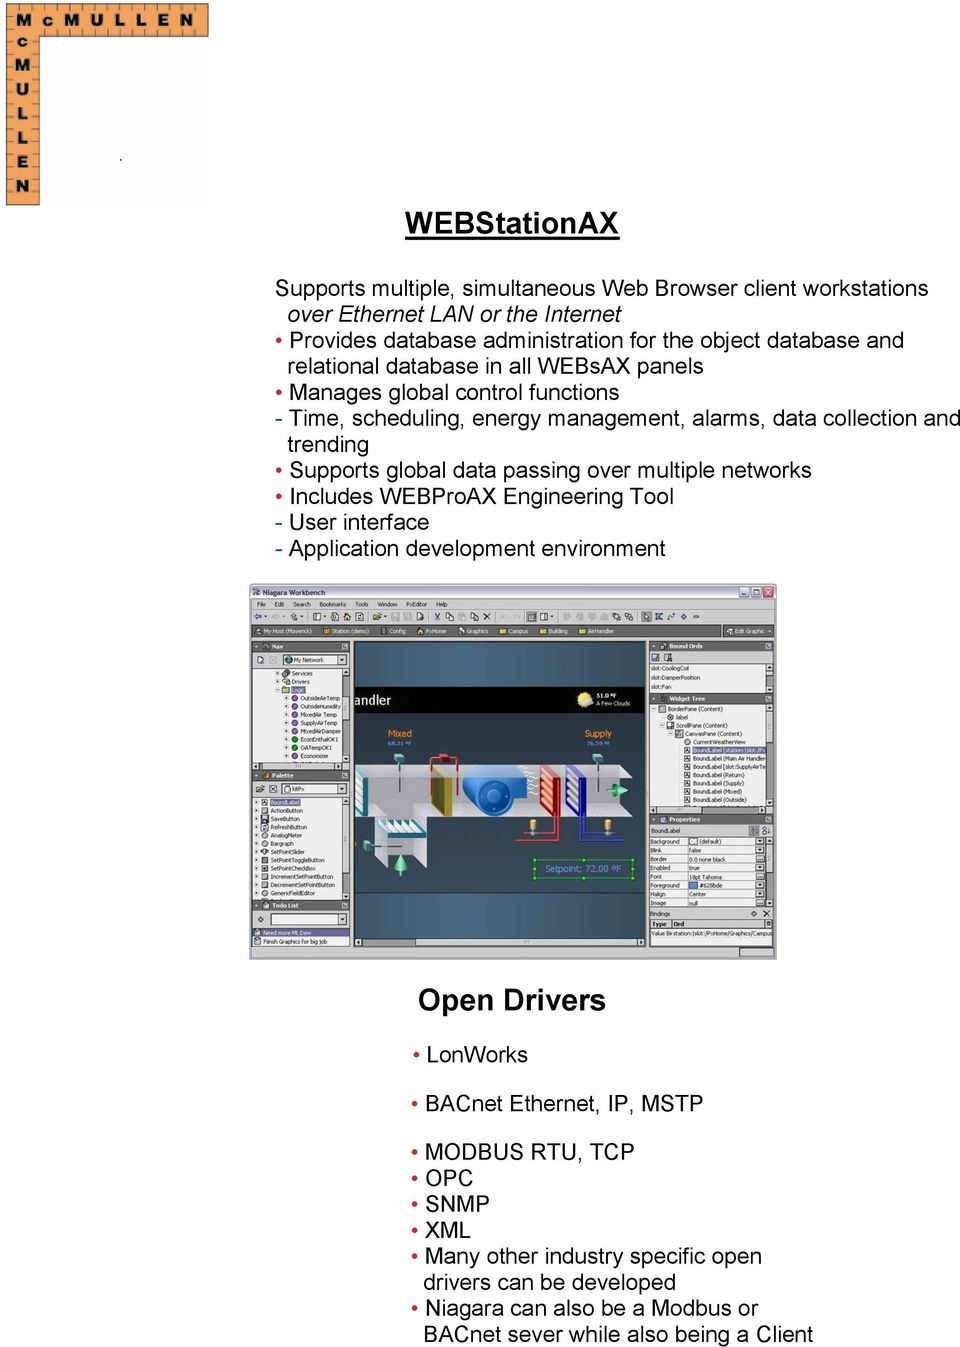 global data passing over multiple networks Includes WEBProAX Engineering Tool - User interface - Application development environment Open Drivers LonWorks BACnet